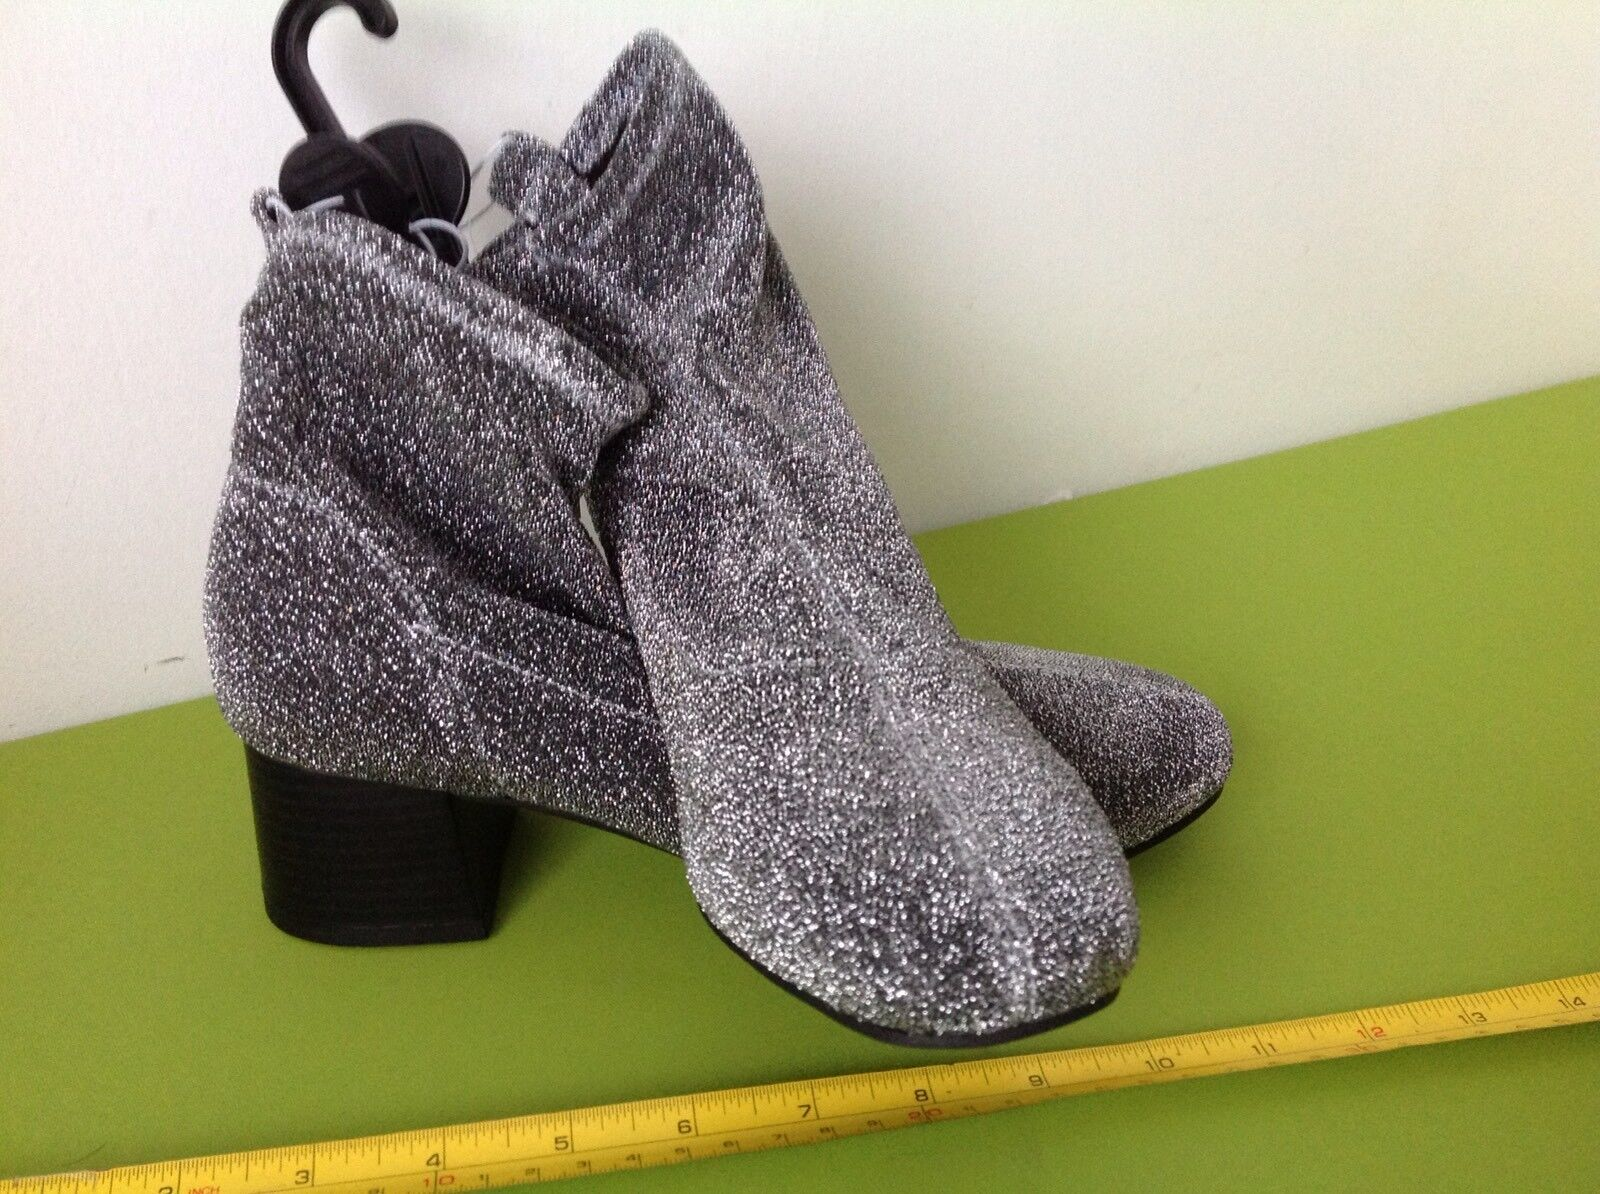 PRIMARK SPARKLY SILVER GREY LAME KINKY ANKLE BOOTS SHOES size 6 eu 39 BNWT new